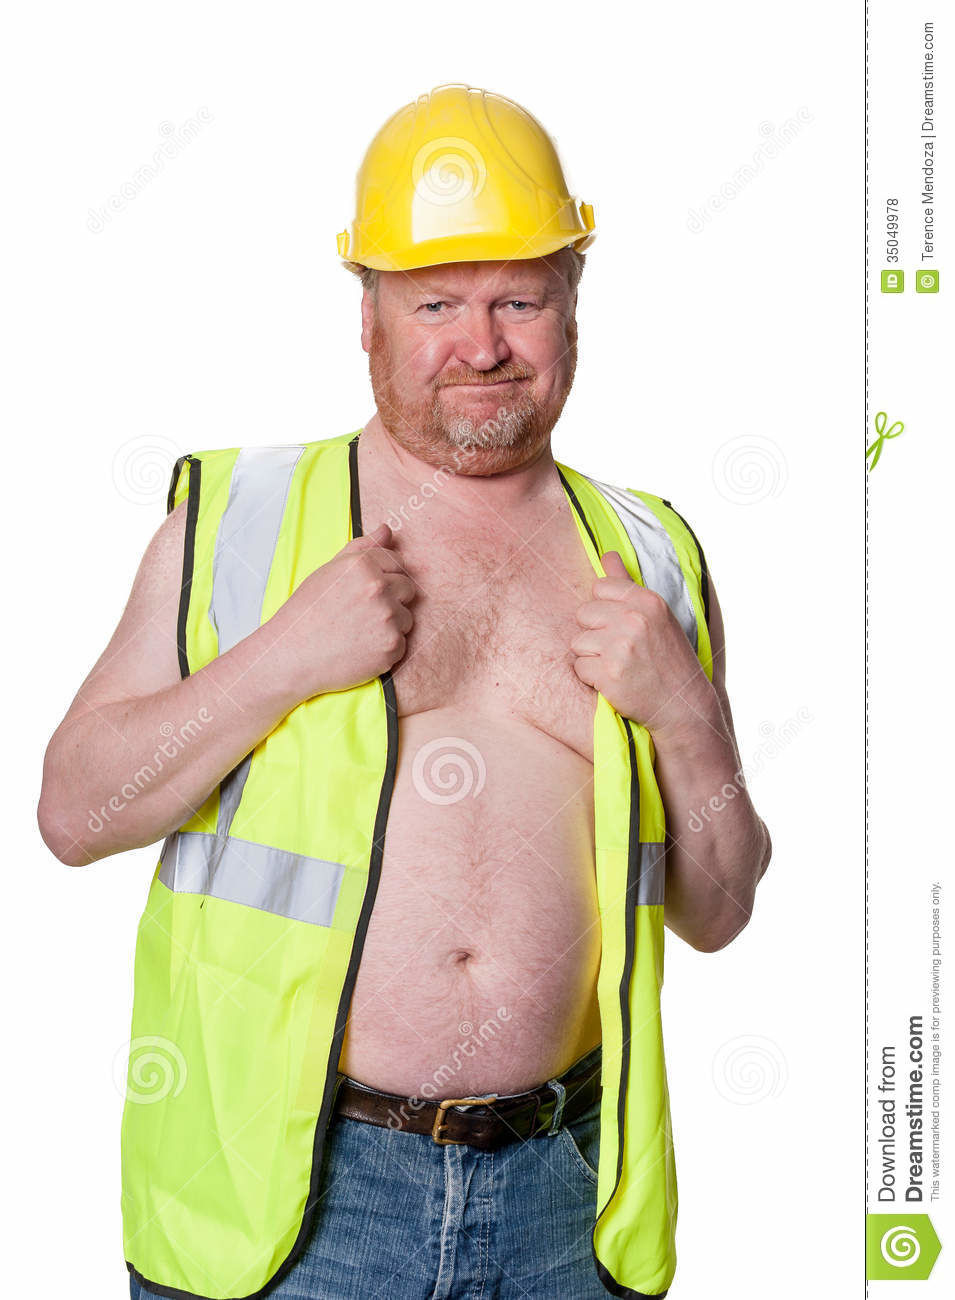 construction-worker-hard-hat-isolated-white-humorous-image-happy-wearing-high-vis-jacket-35049978.jpg